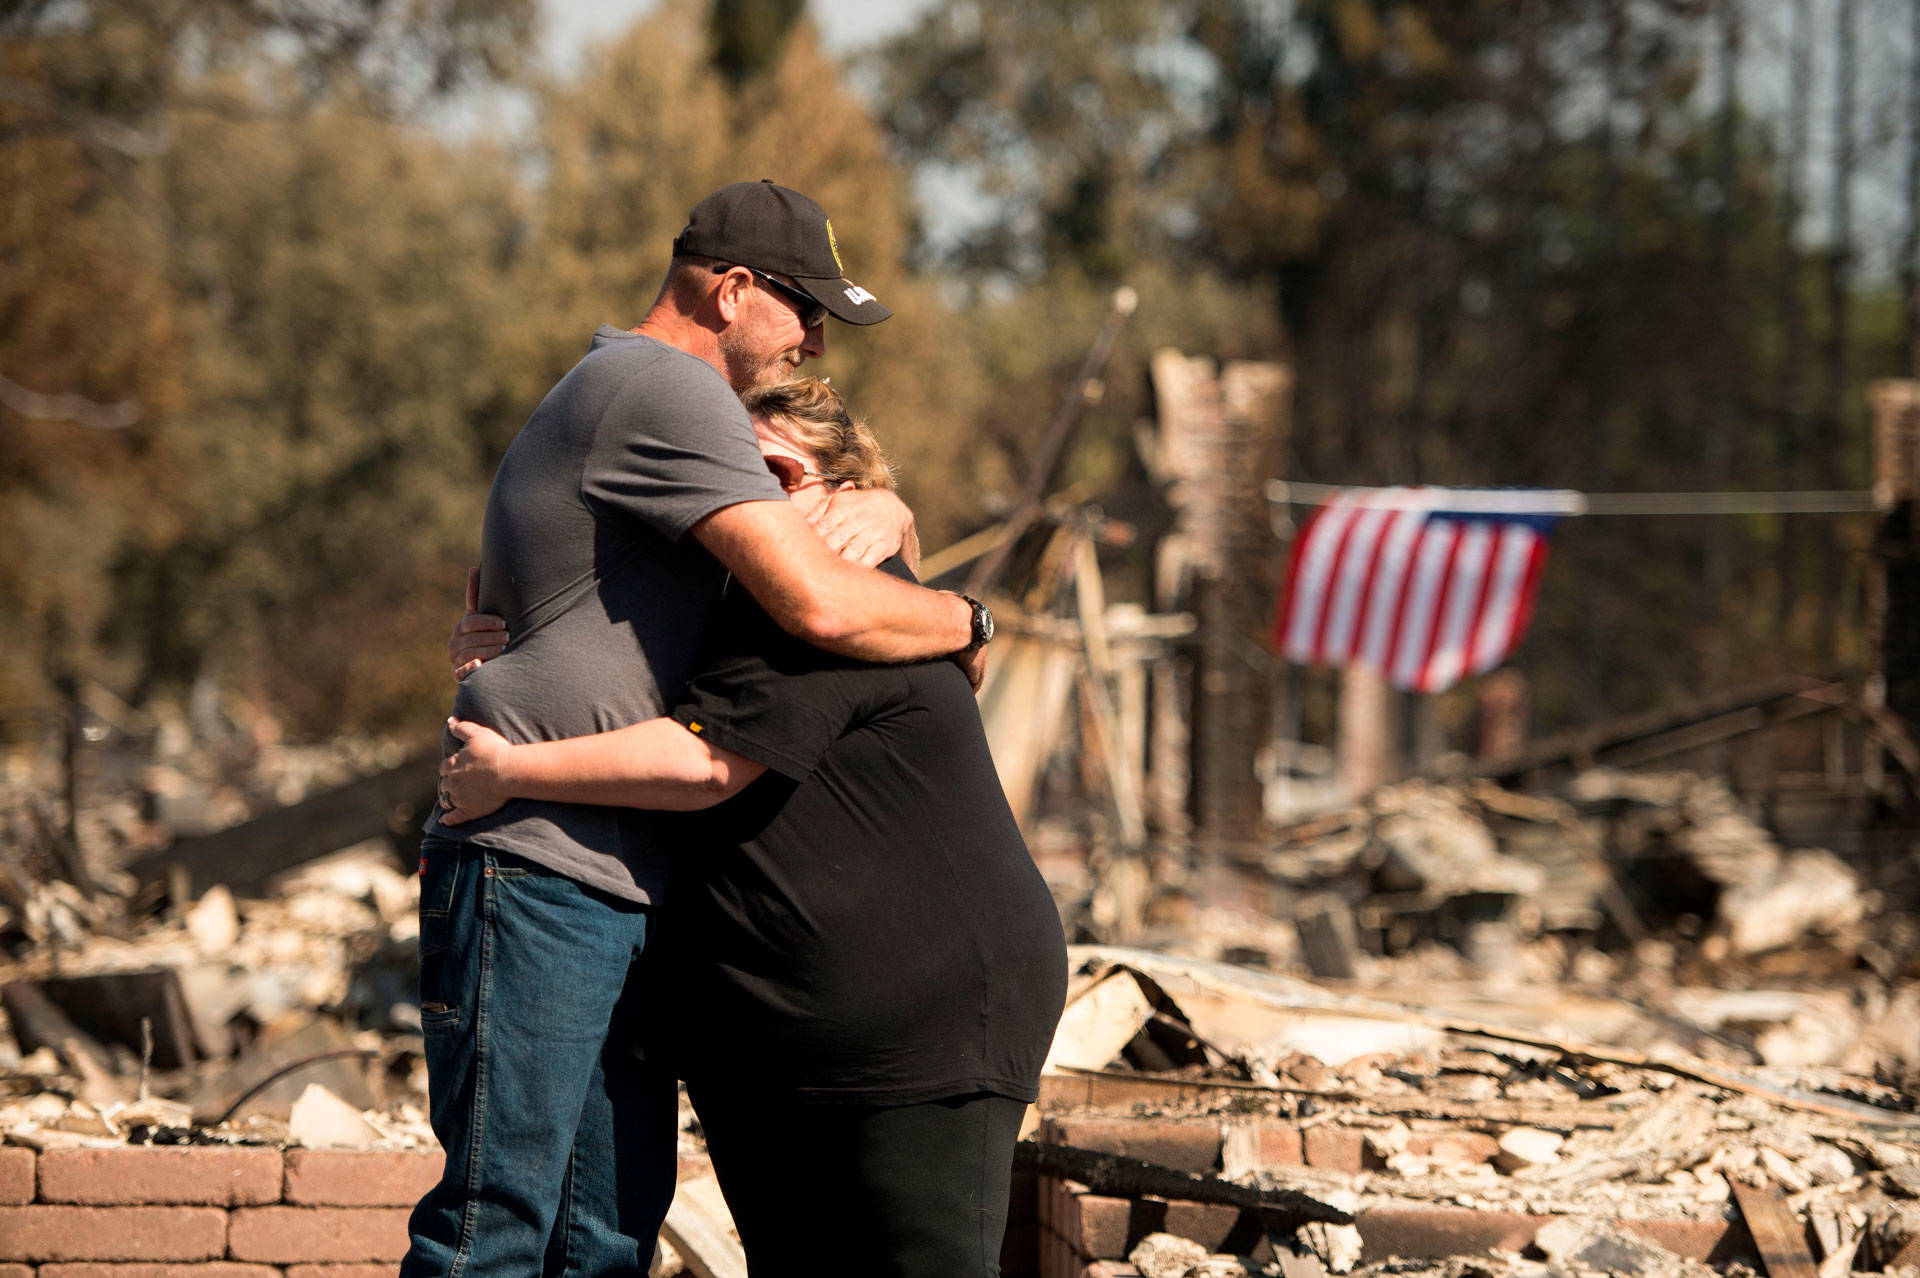 Charlie and Kate Higgins embrace in front of their burned home in Santa Rosa on Oct. 12, 2017. JOSH EDELSON/AFP/Getty Images